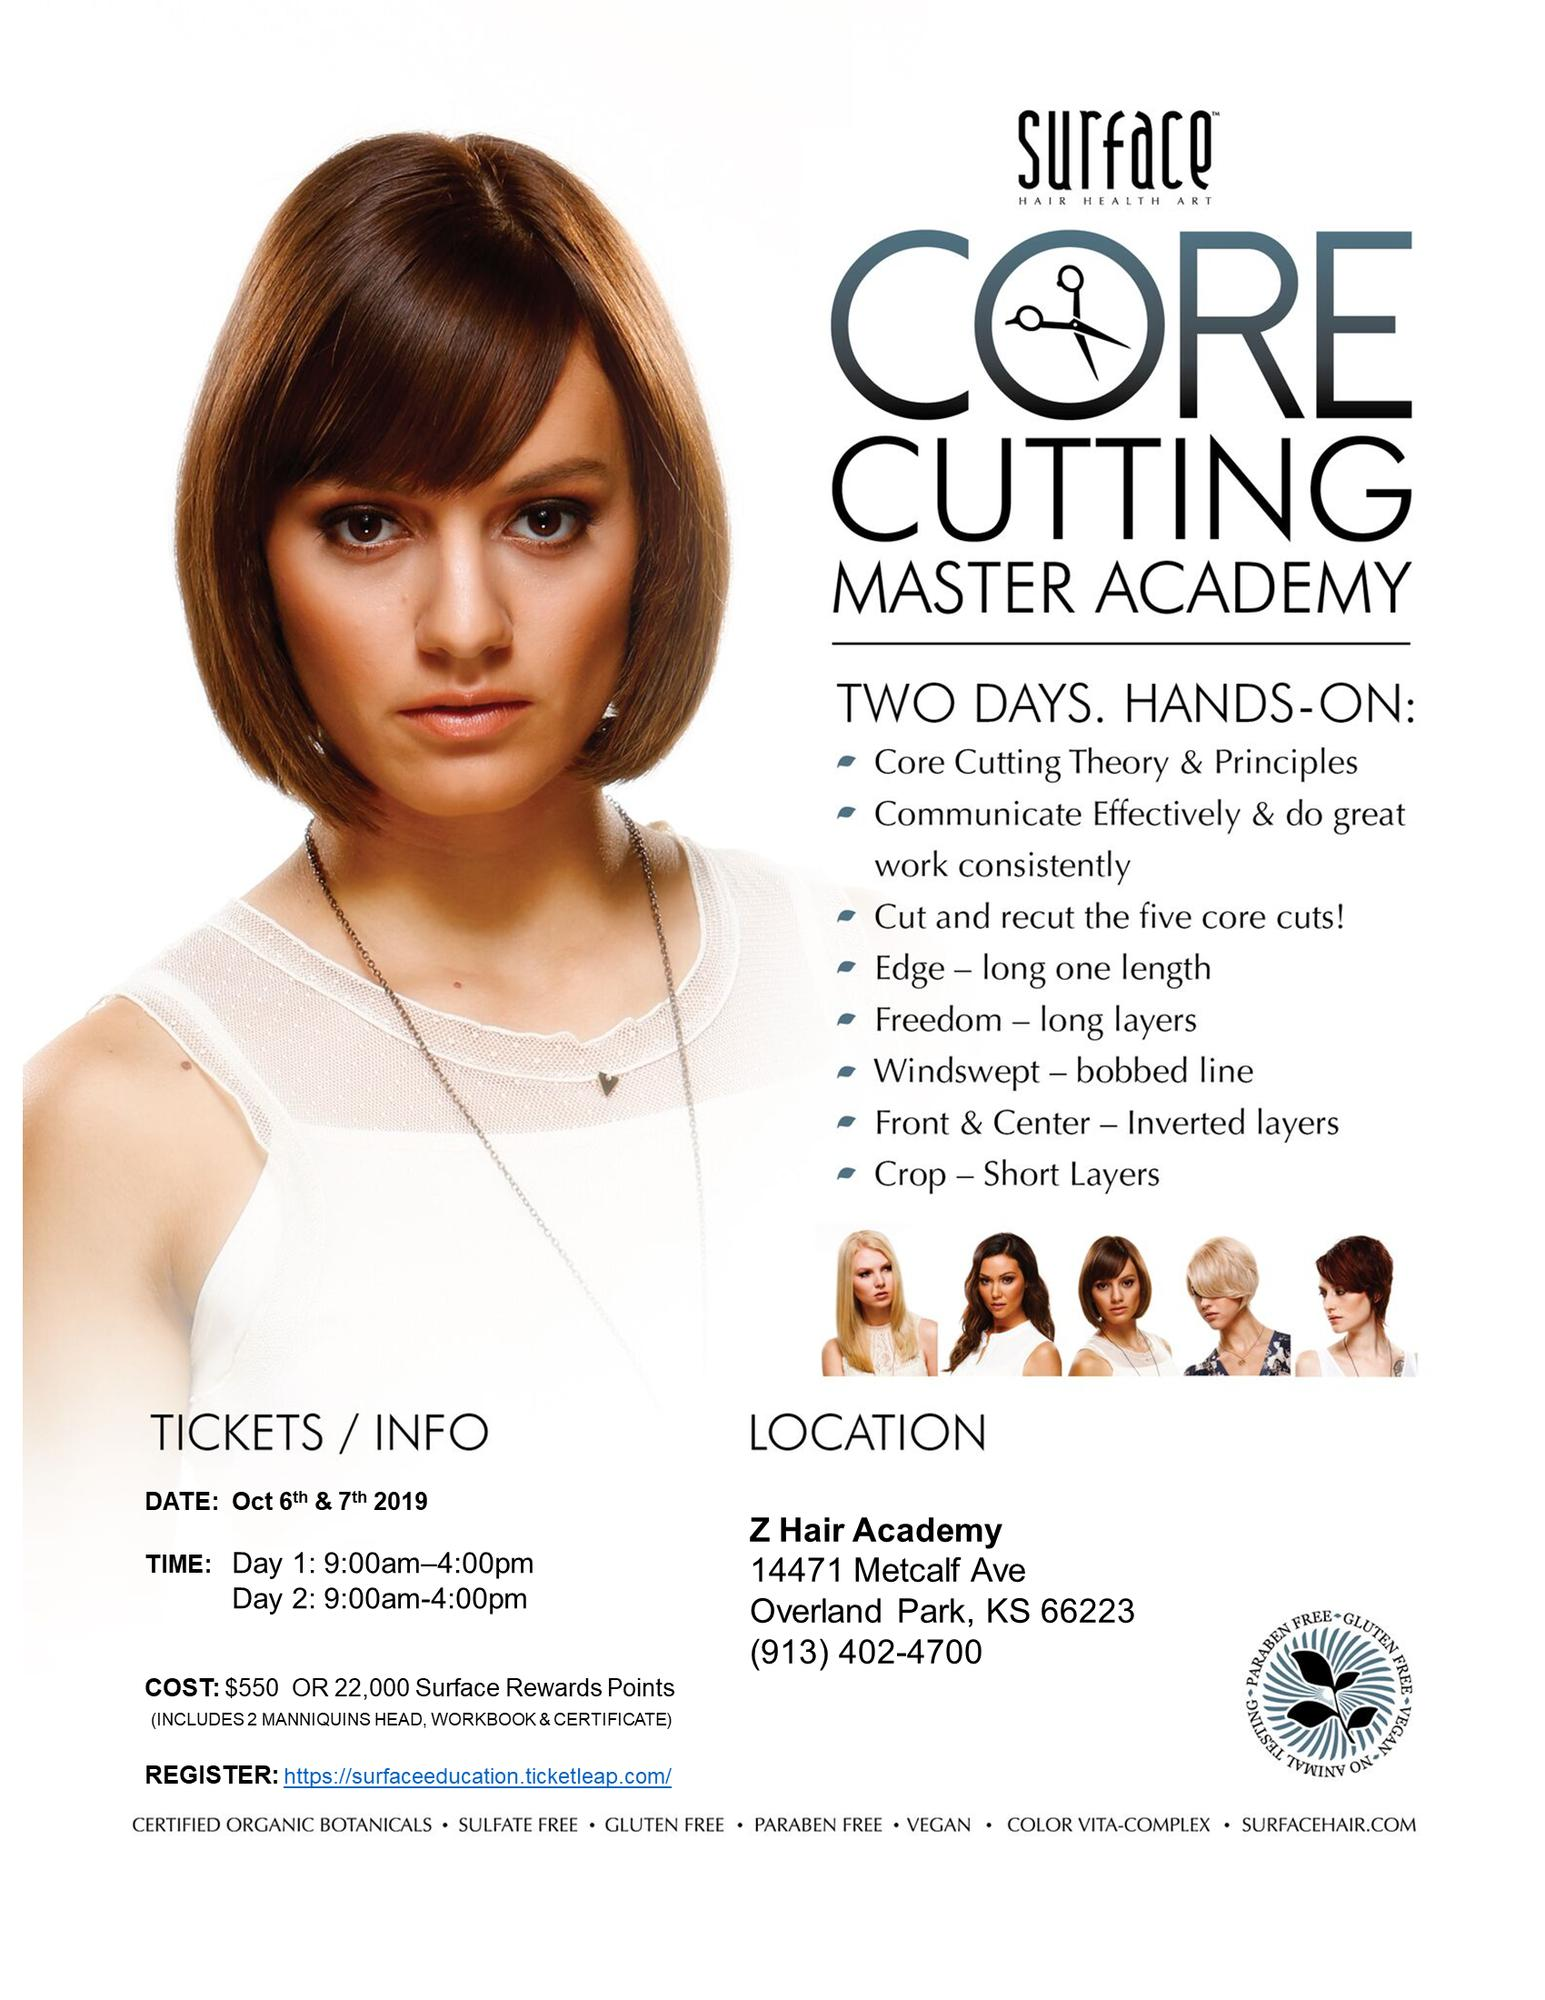 Surface Master Core Cutting: Kansas City Oct 12 & 12 Tickets in